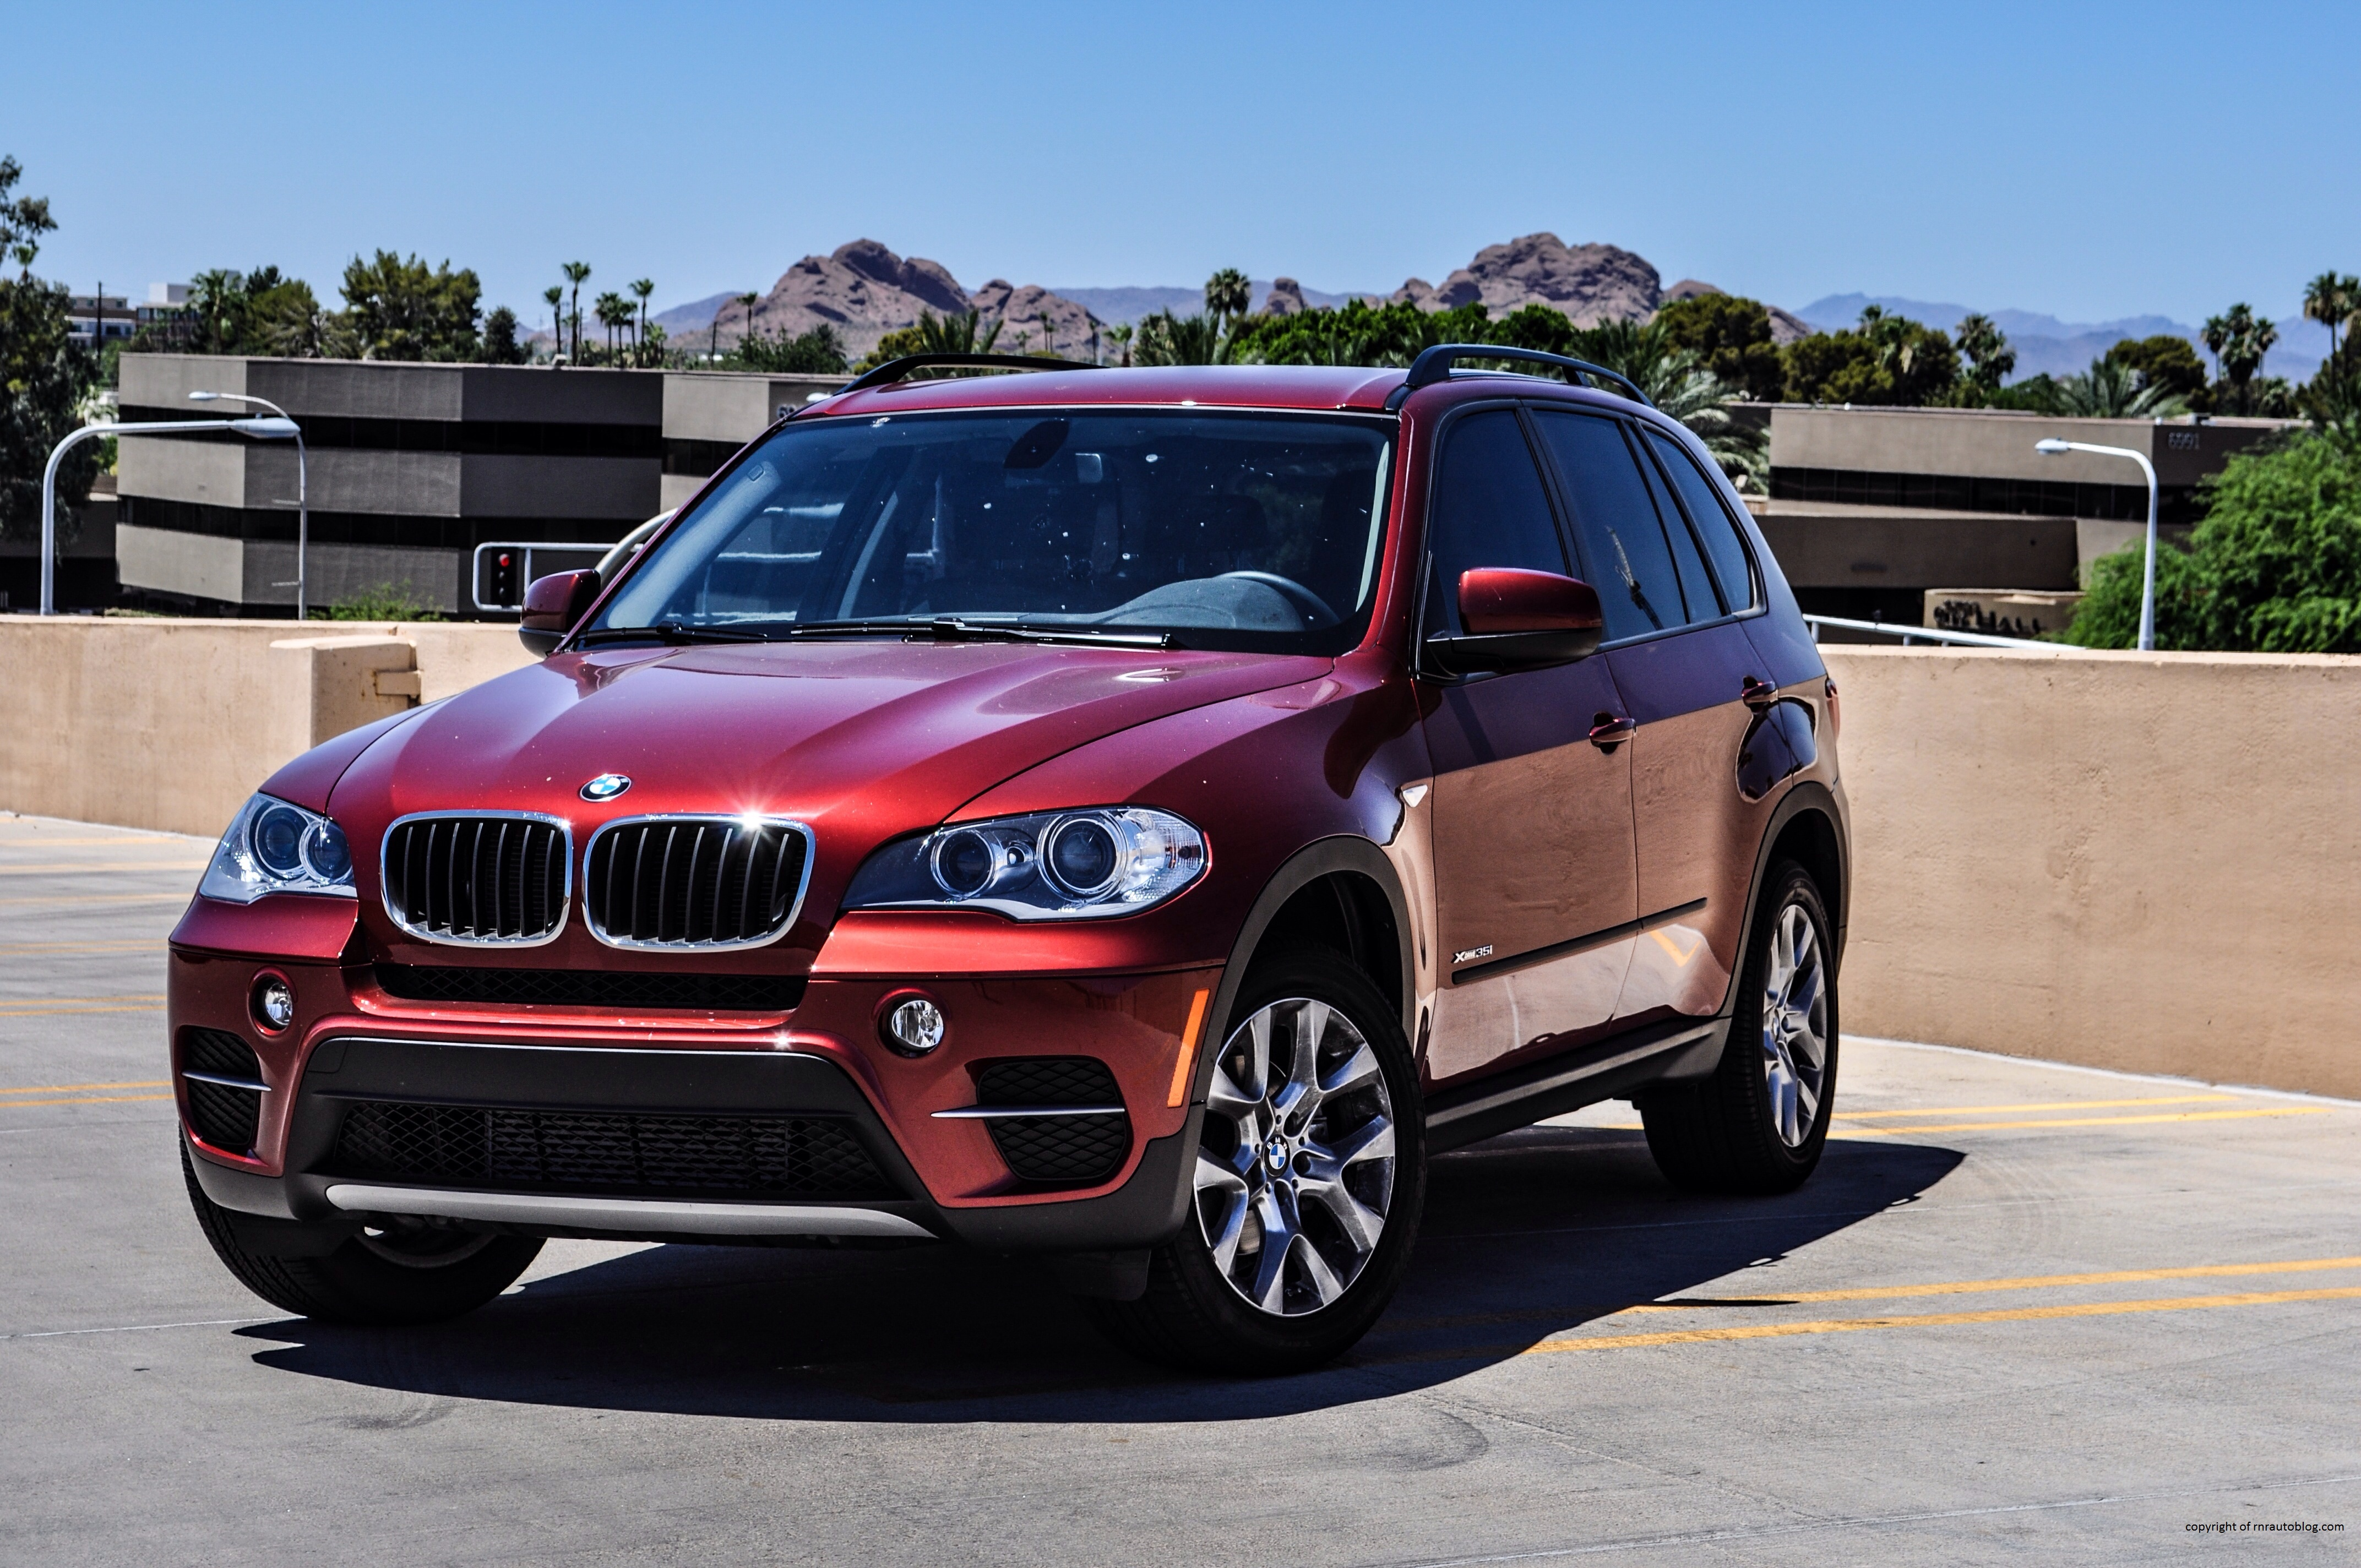 2013 Bmw X5 Xdrive35i Review Rnr Automotive Blog